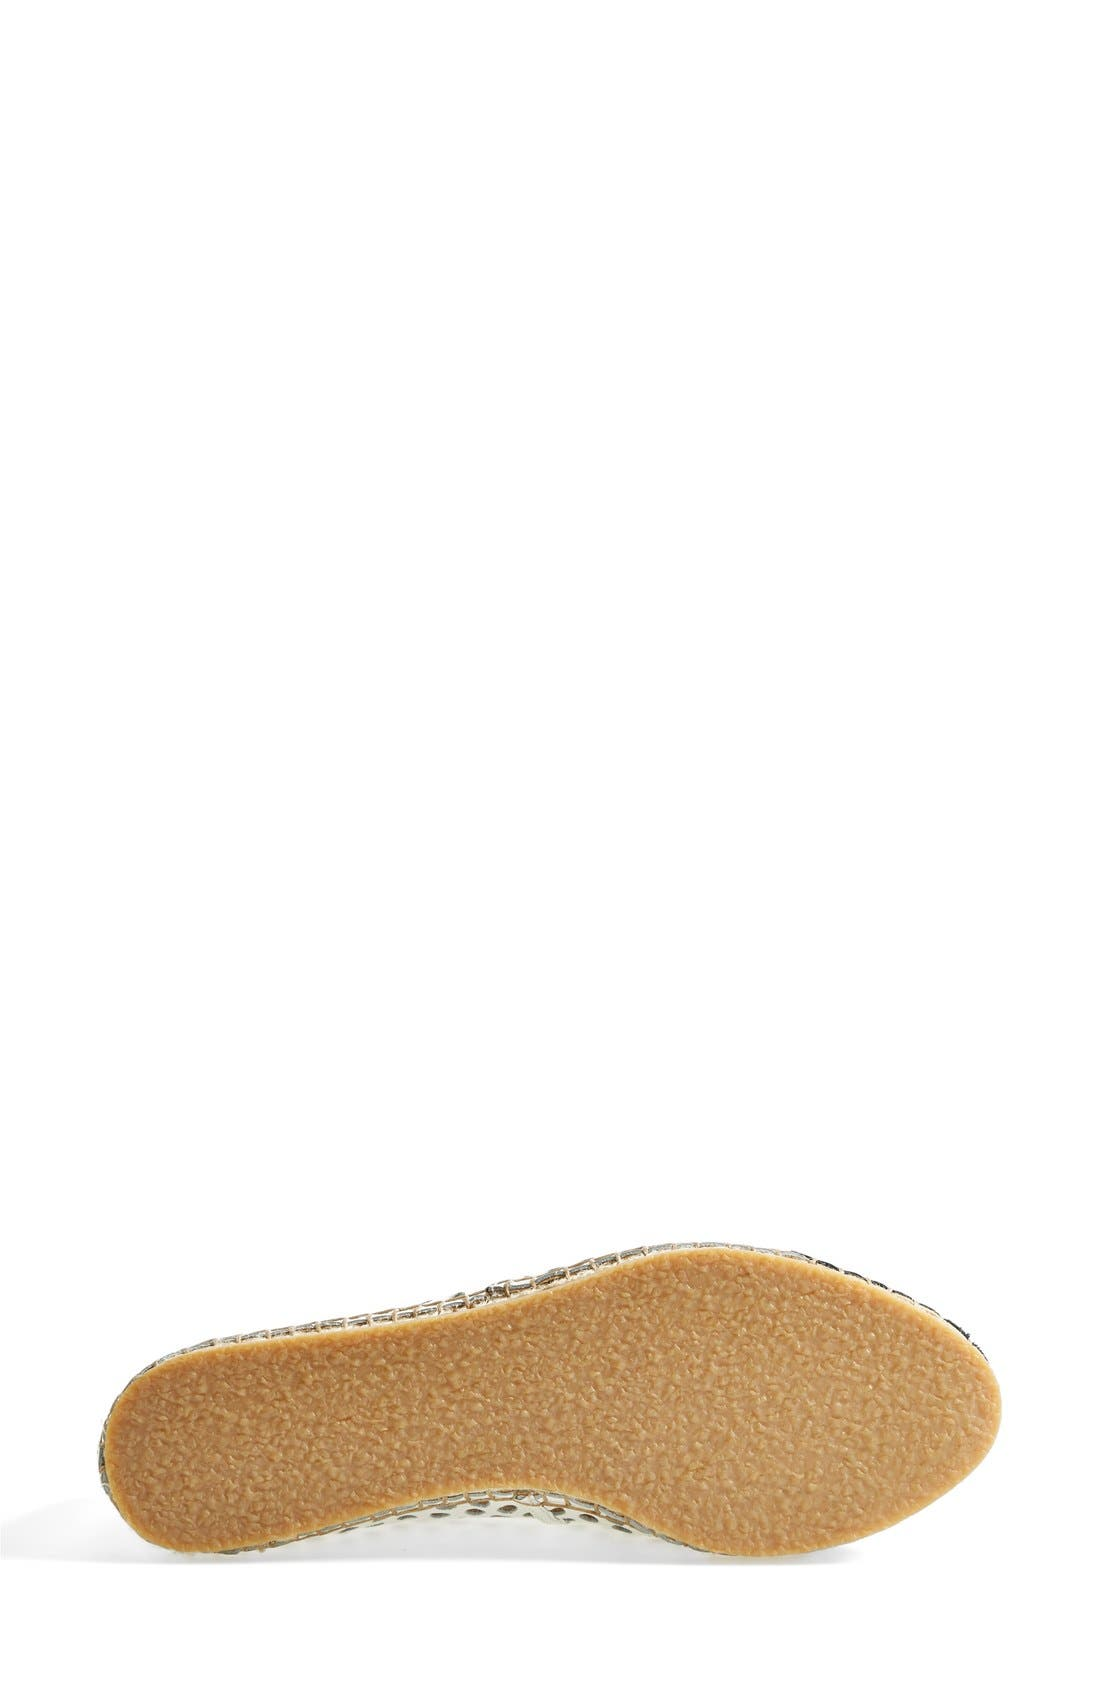 'Mara' Espadrille Flat,                             Alternate thumbnail 4, color,                             White/ Black